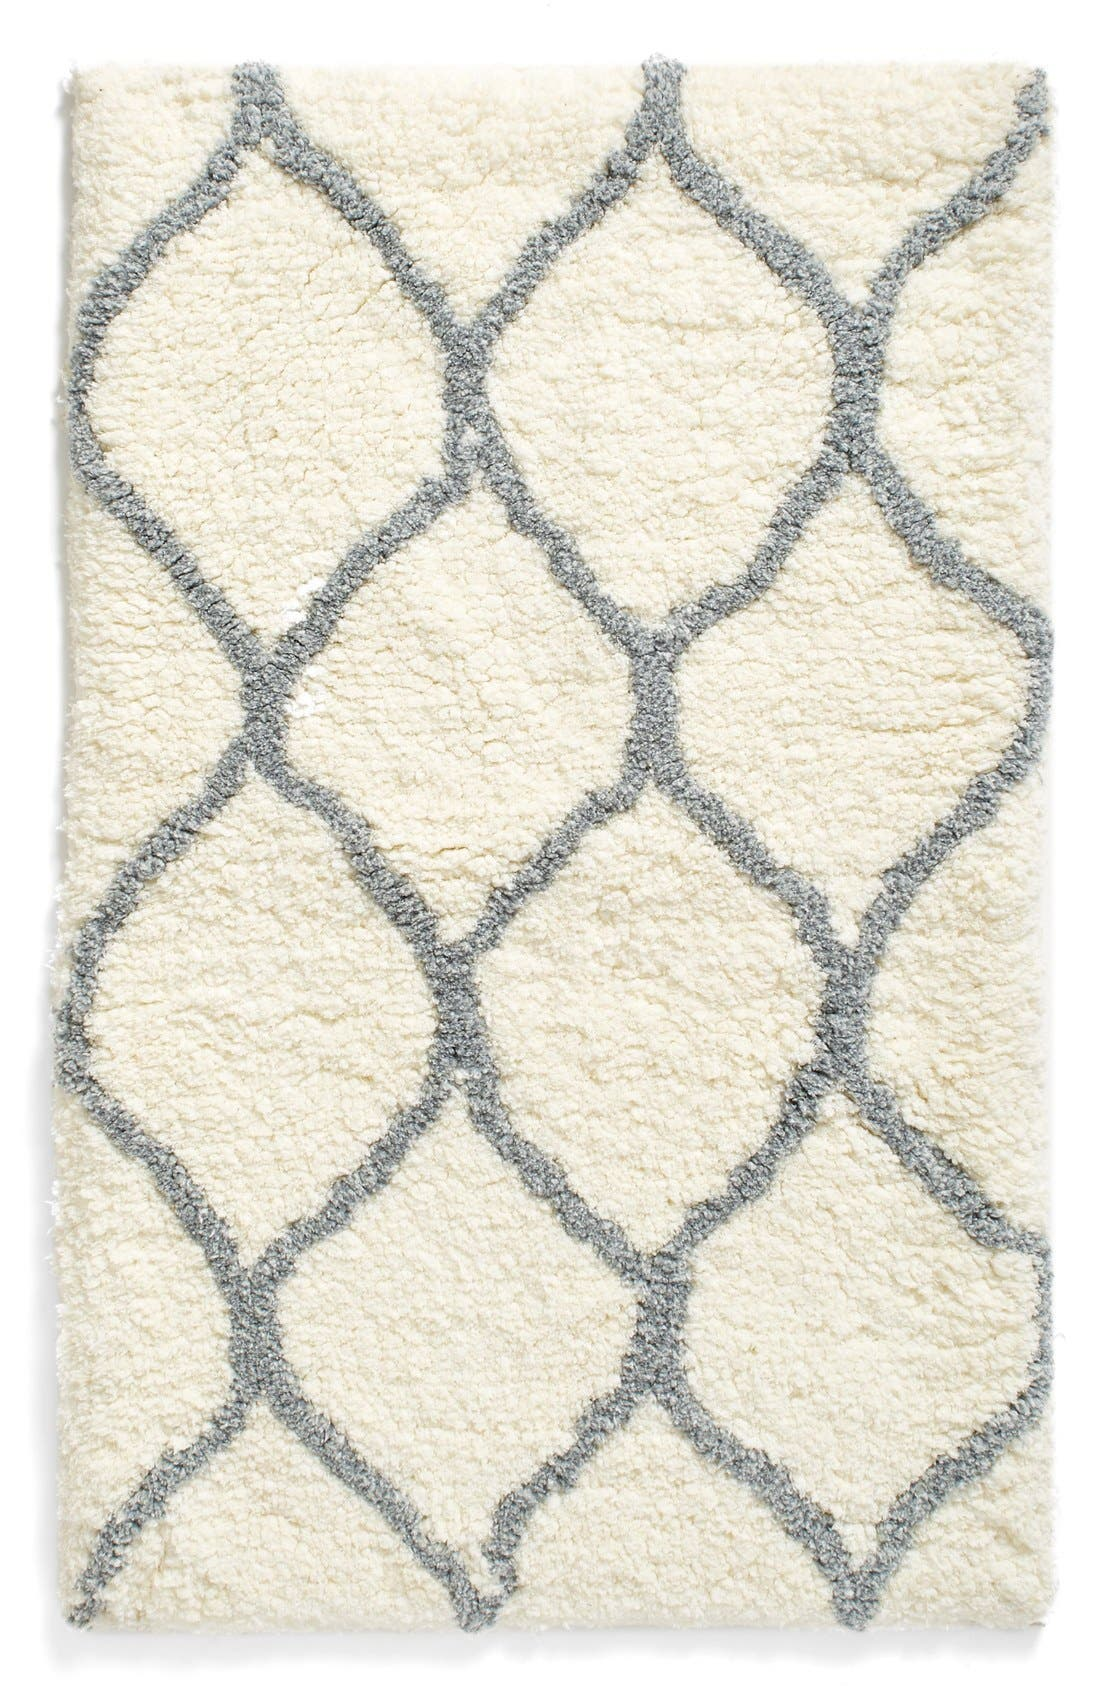 Alternate Image 1 Selected - Mina Victory Morocco Rug